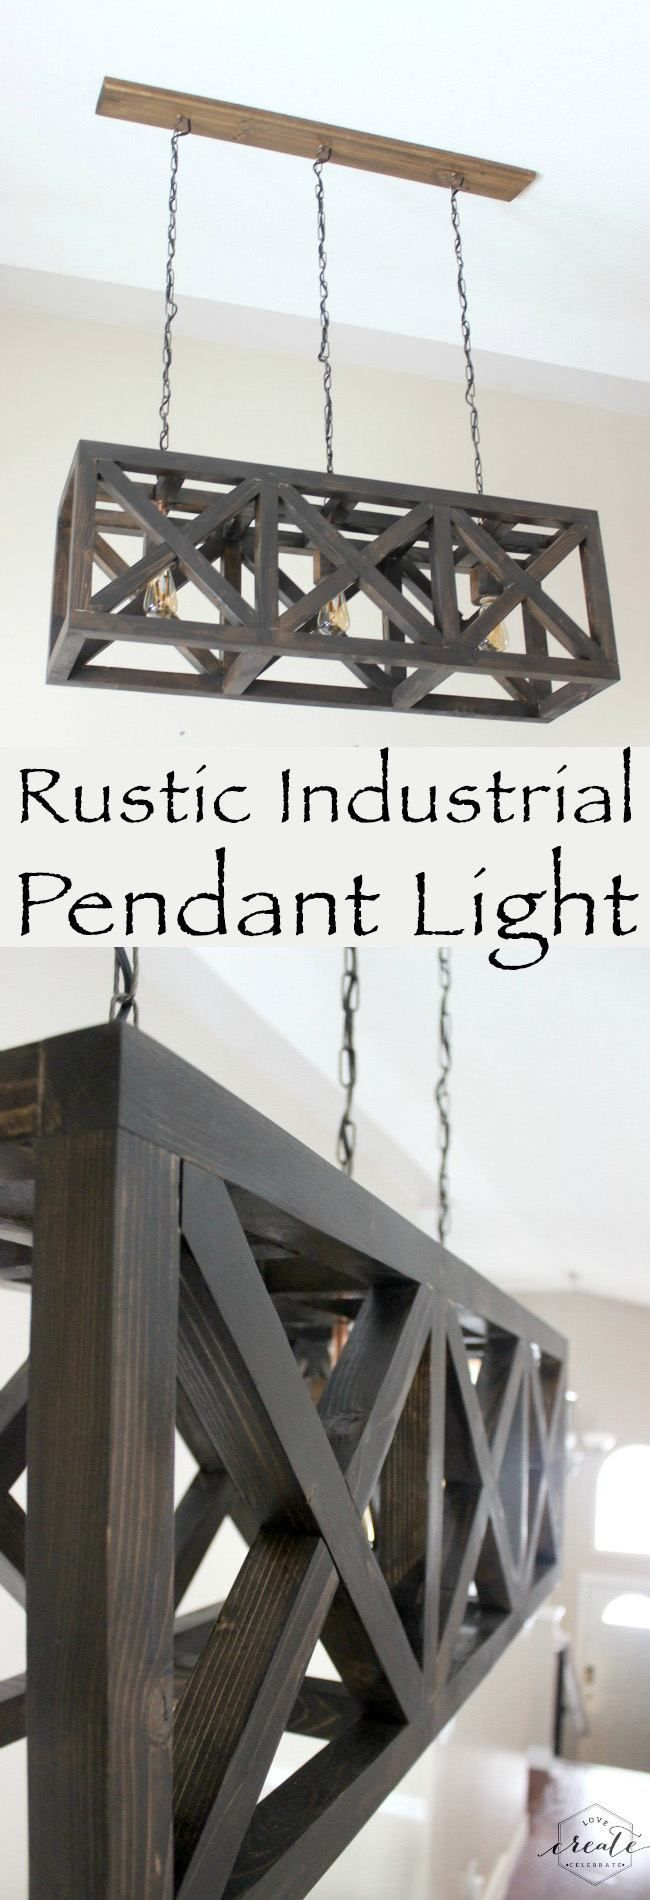 Rustic Industrial Pendant Light  with free design plans for this beautiful DIY light fixture!!